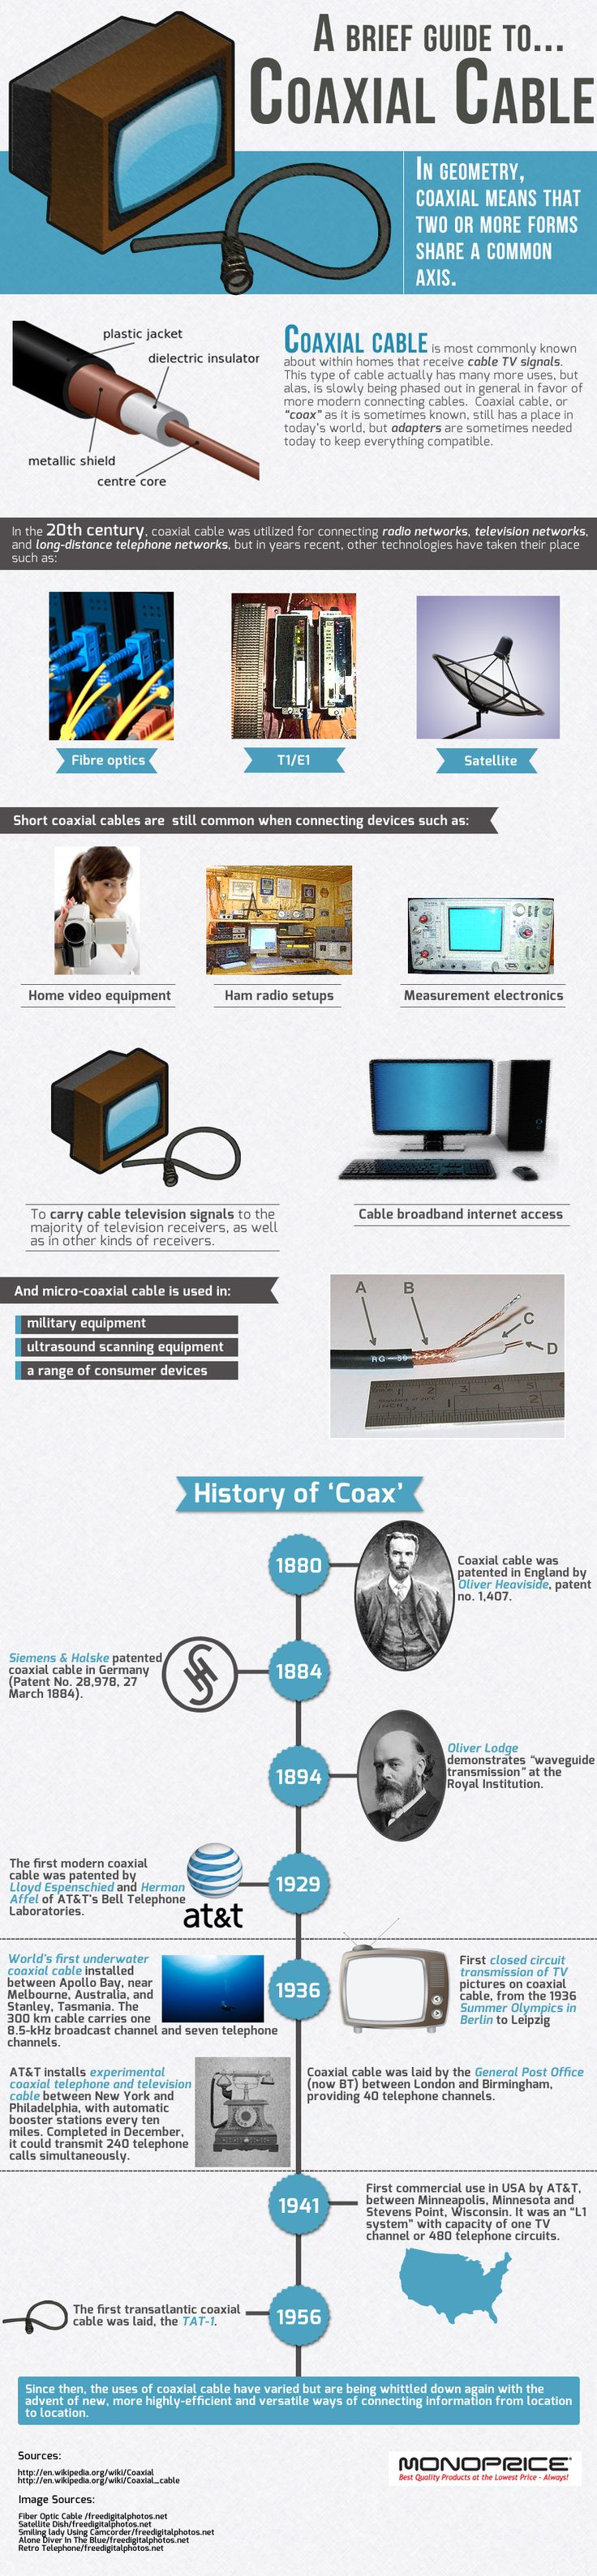 http://www.monoprice.com/help?idx=19  A Brief Guide to Coaxial Cables [Infographic]